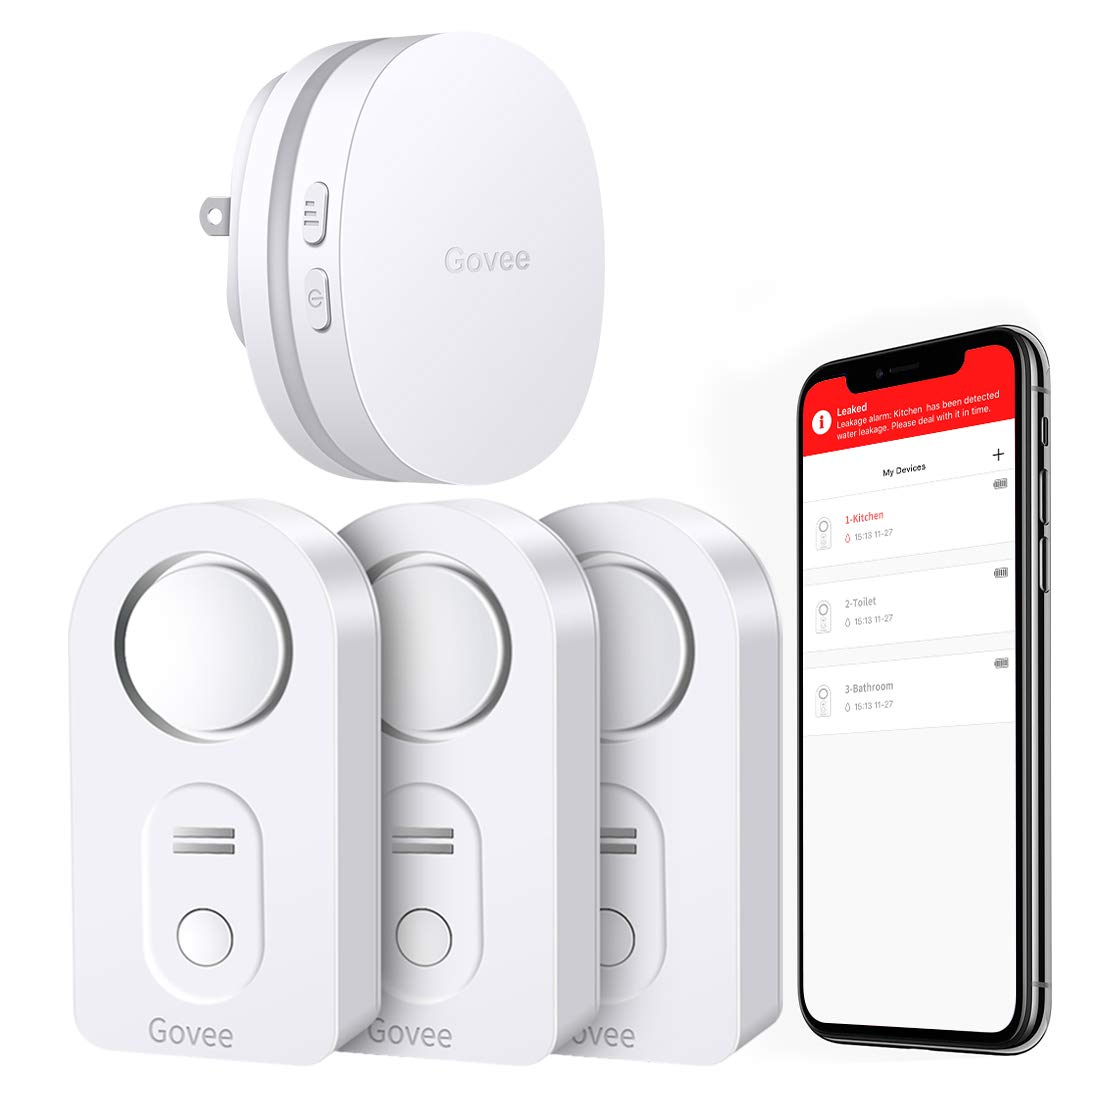 Govee WiFi Water Leak Detector, Smart APP Leak Alert, Wireless Water Sensor and Alarm with Email, Notification, App Alerts, Remote Monitor Leak for Home Security Basement(3 Packs)(Not Support 5G WiFi) by Govee